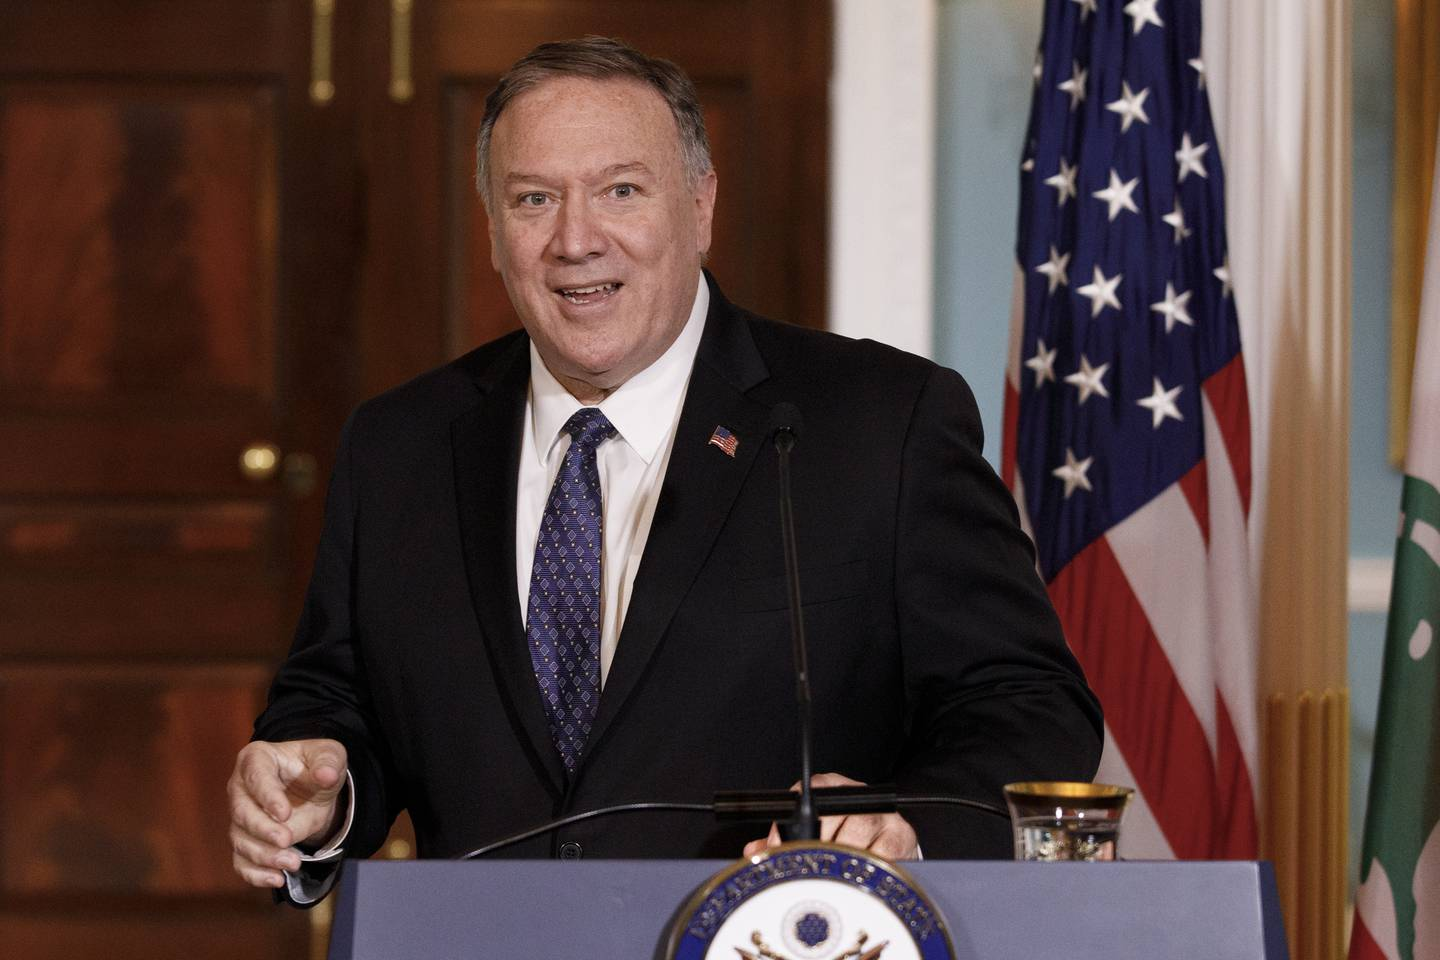 In this Aug. 15, 2019, file photo, Secretary of State Mike Pompeo speaks to media during a news conference with Lebanese Prime Minister Saad Hariri at the State Department in Washington.